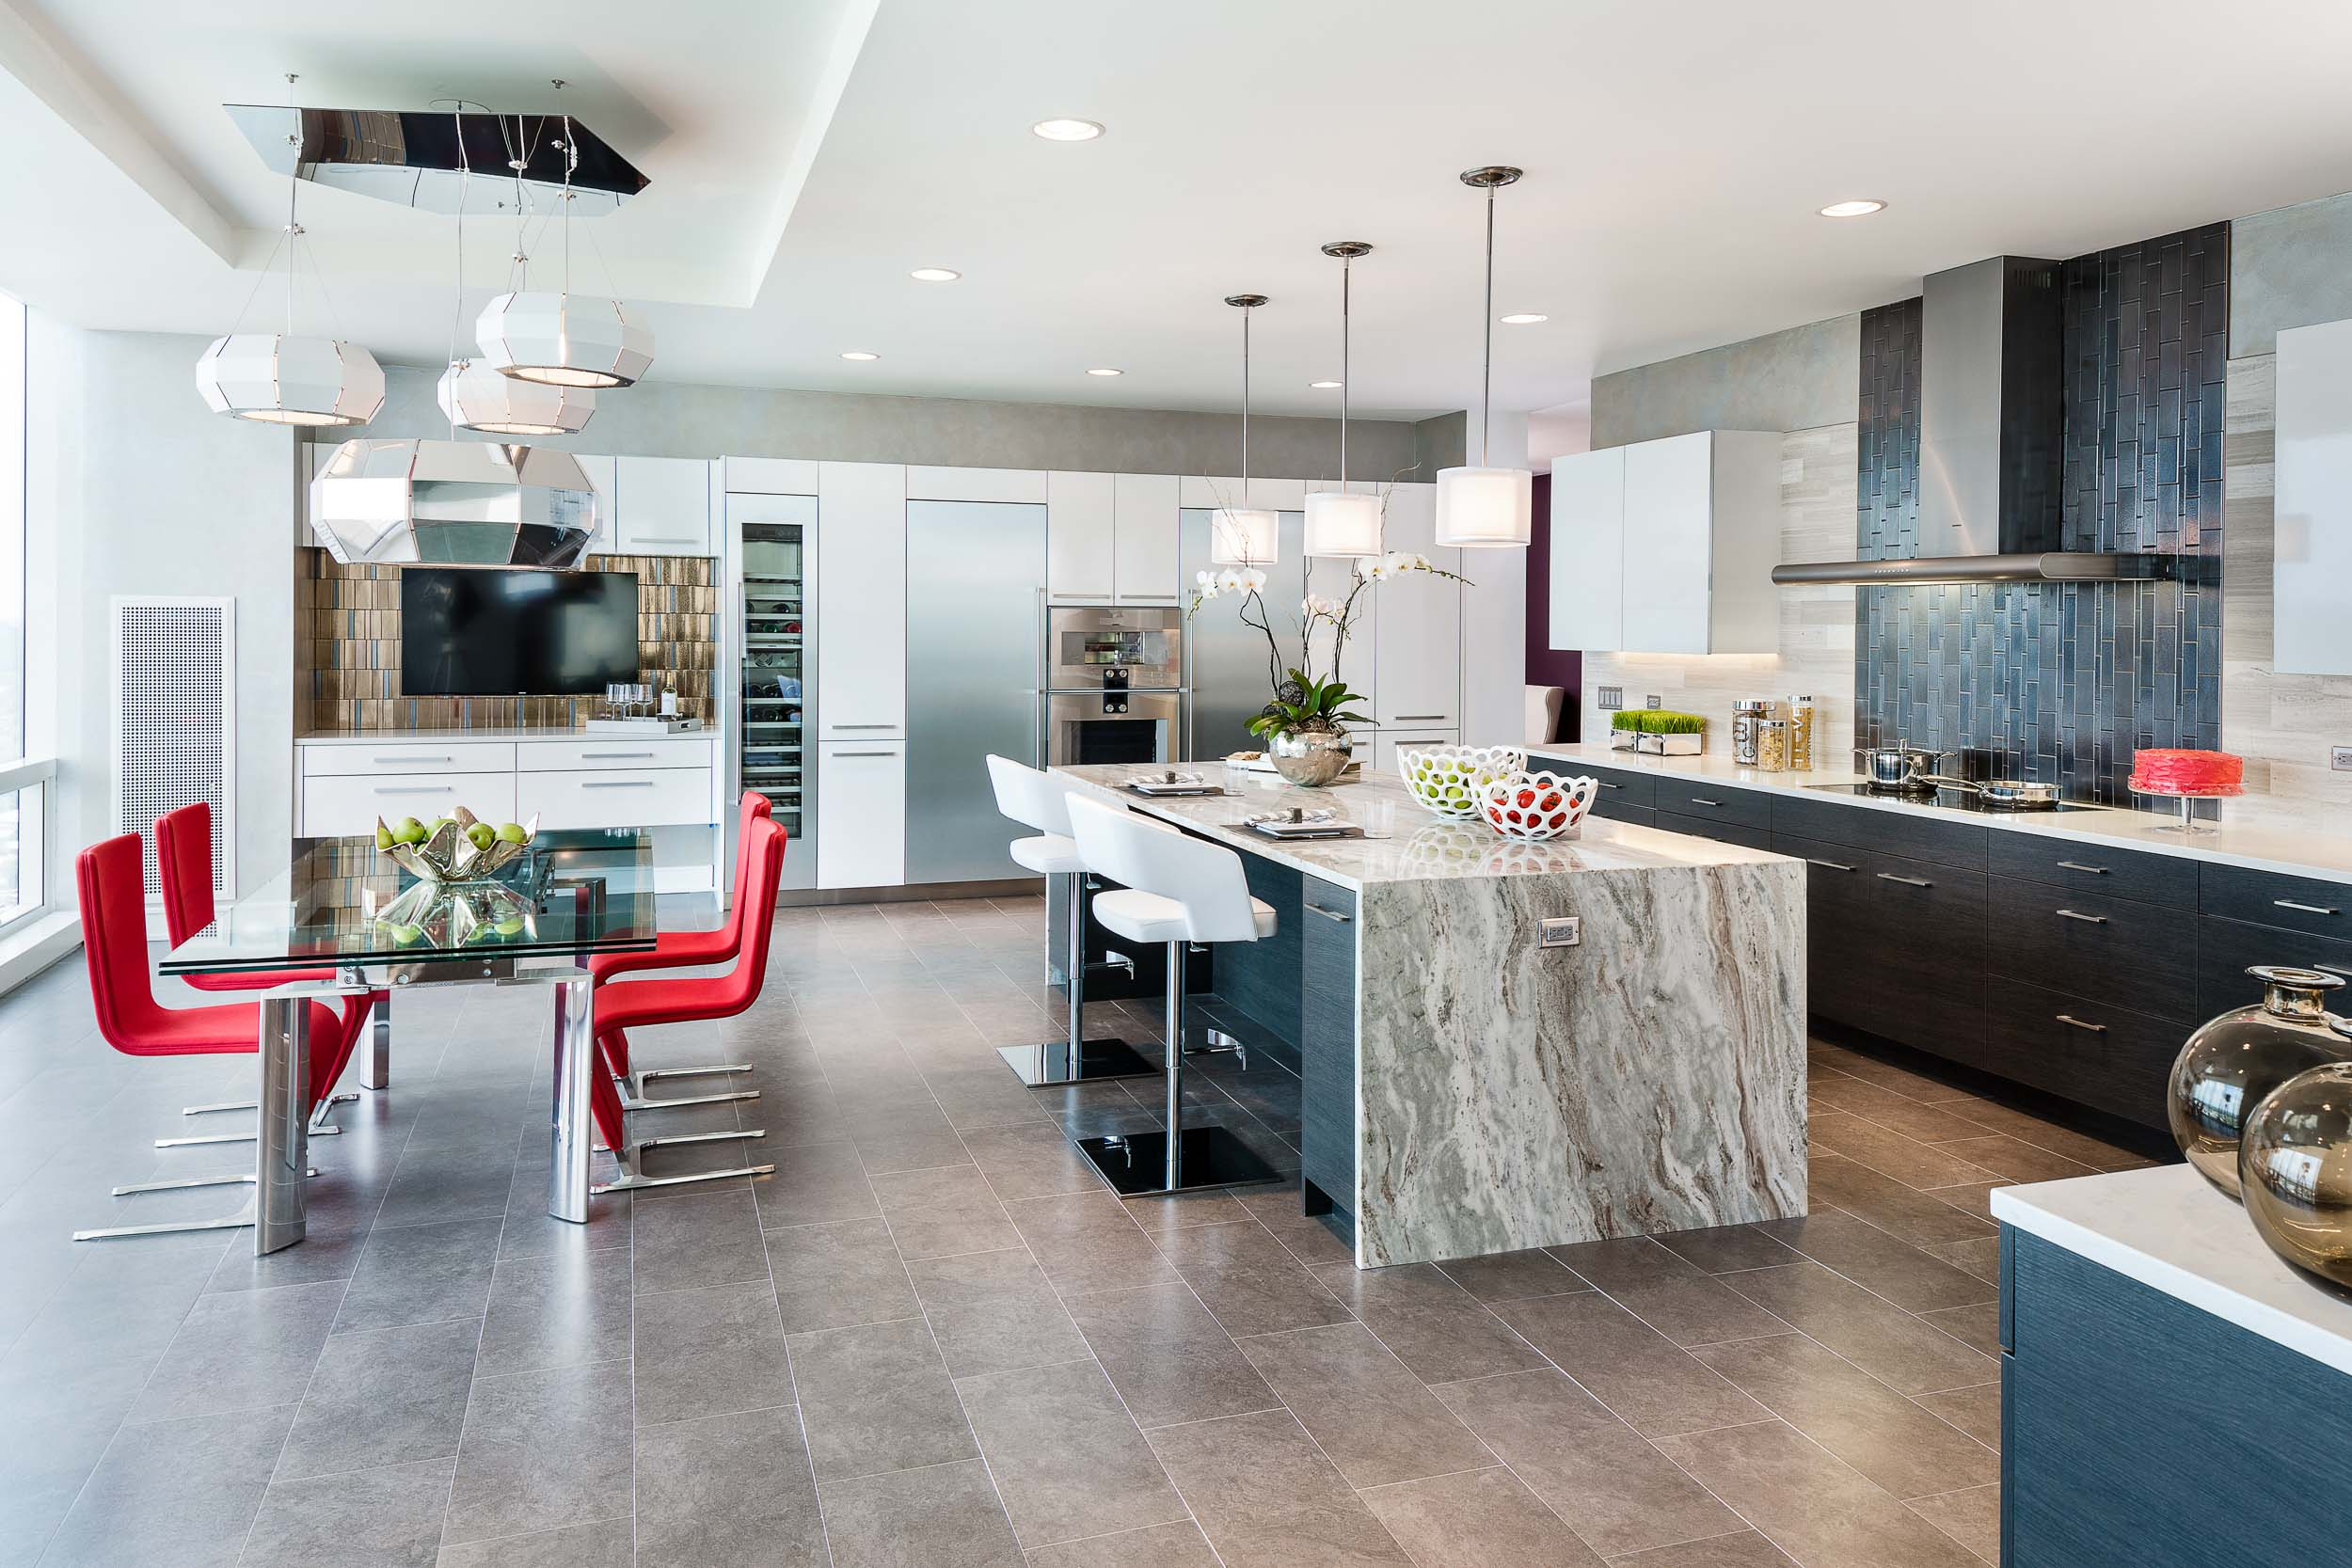 Kitchen in a Luxury Condominium at the Ritz Carlton Residences in Westchester, New York.